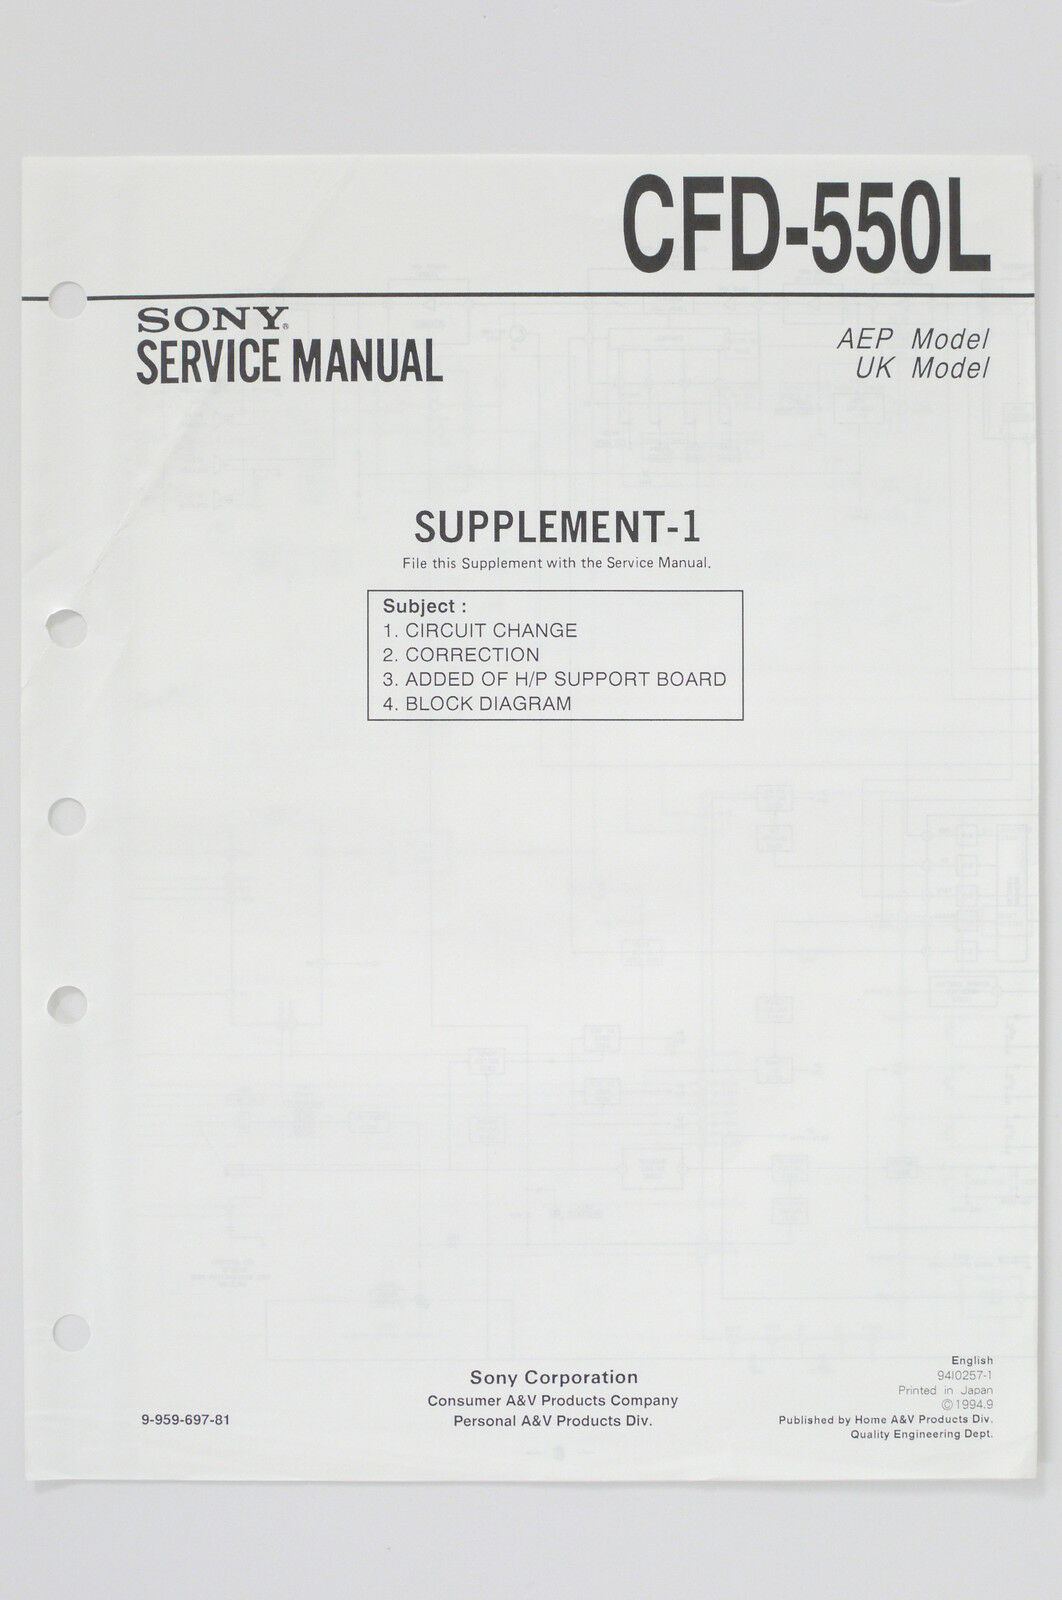 Sony Cfd 550l Original Service Manual Guide Wiring Diagram 1 Of 1only Available